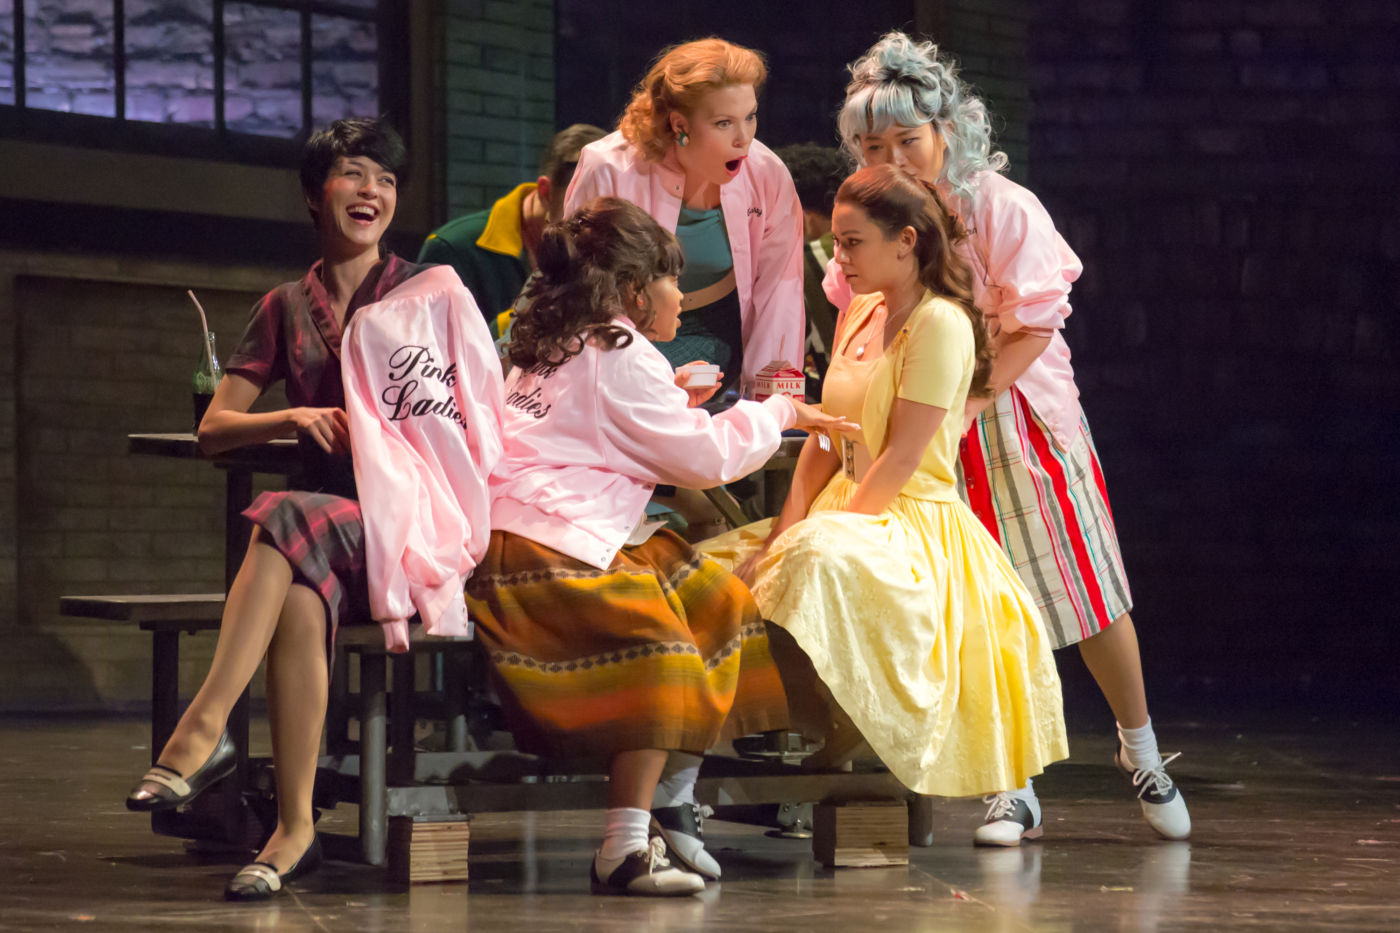 Grease the Musical, grease the musical toronto, grease toronto, grease toronto show dates, grease toronto tickets, grease musical second run